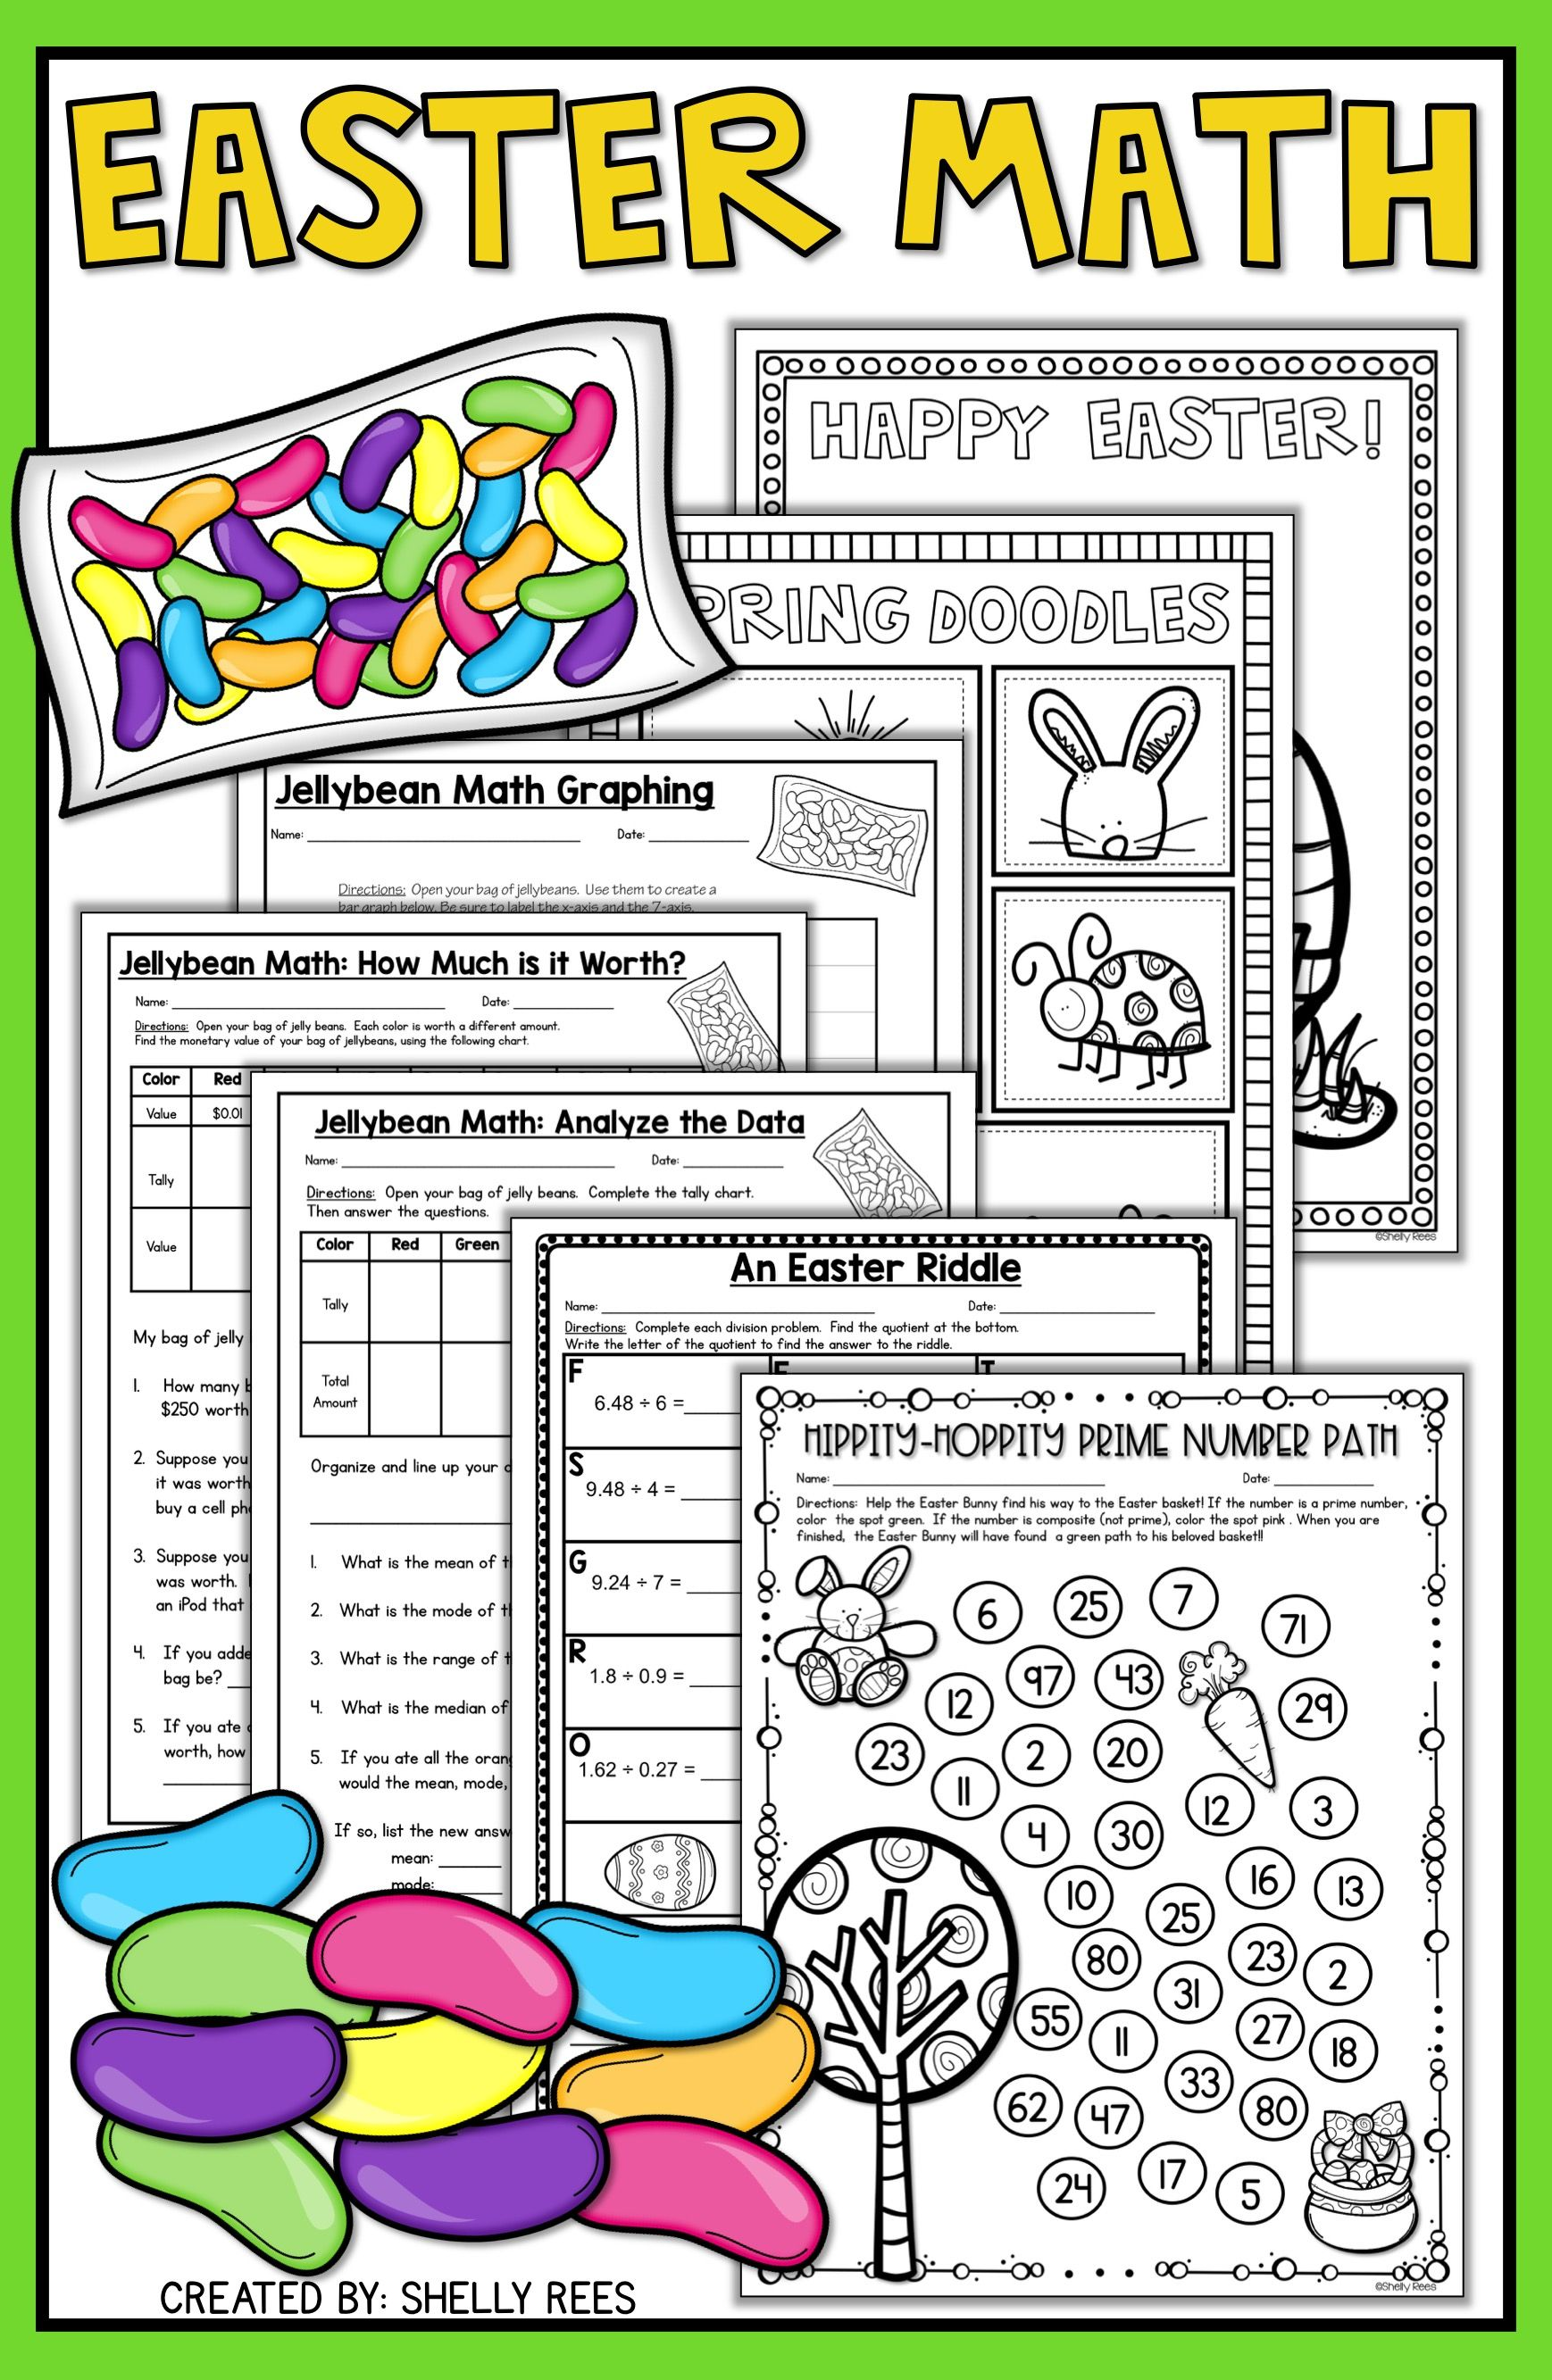 small resolution of Easter Math Worksheets - Jellybean Math - Easter Activities   Easter math